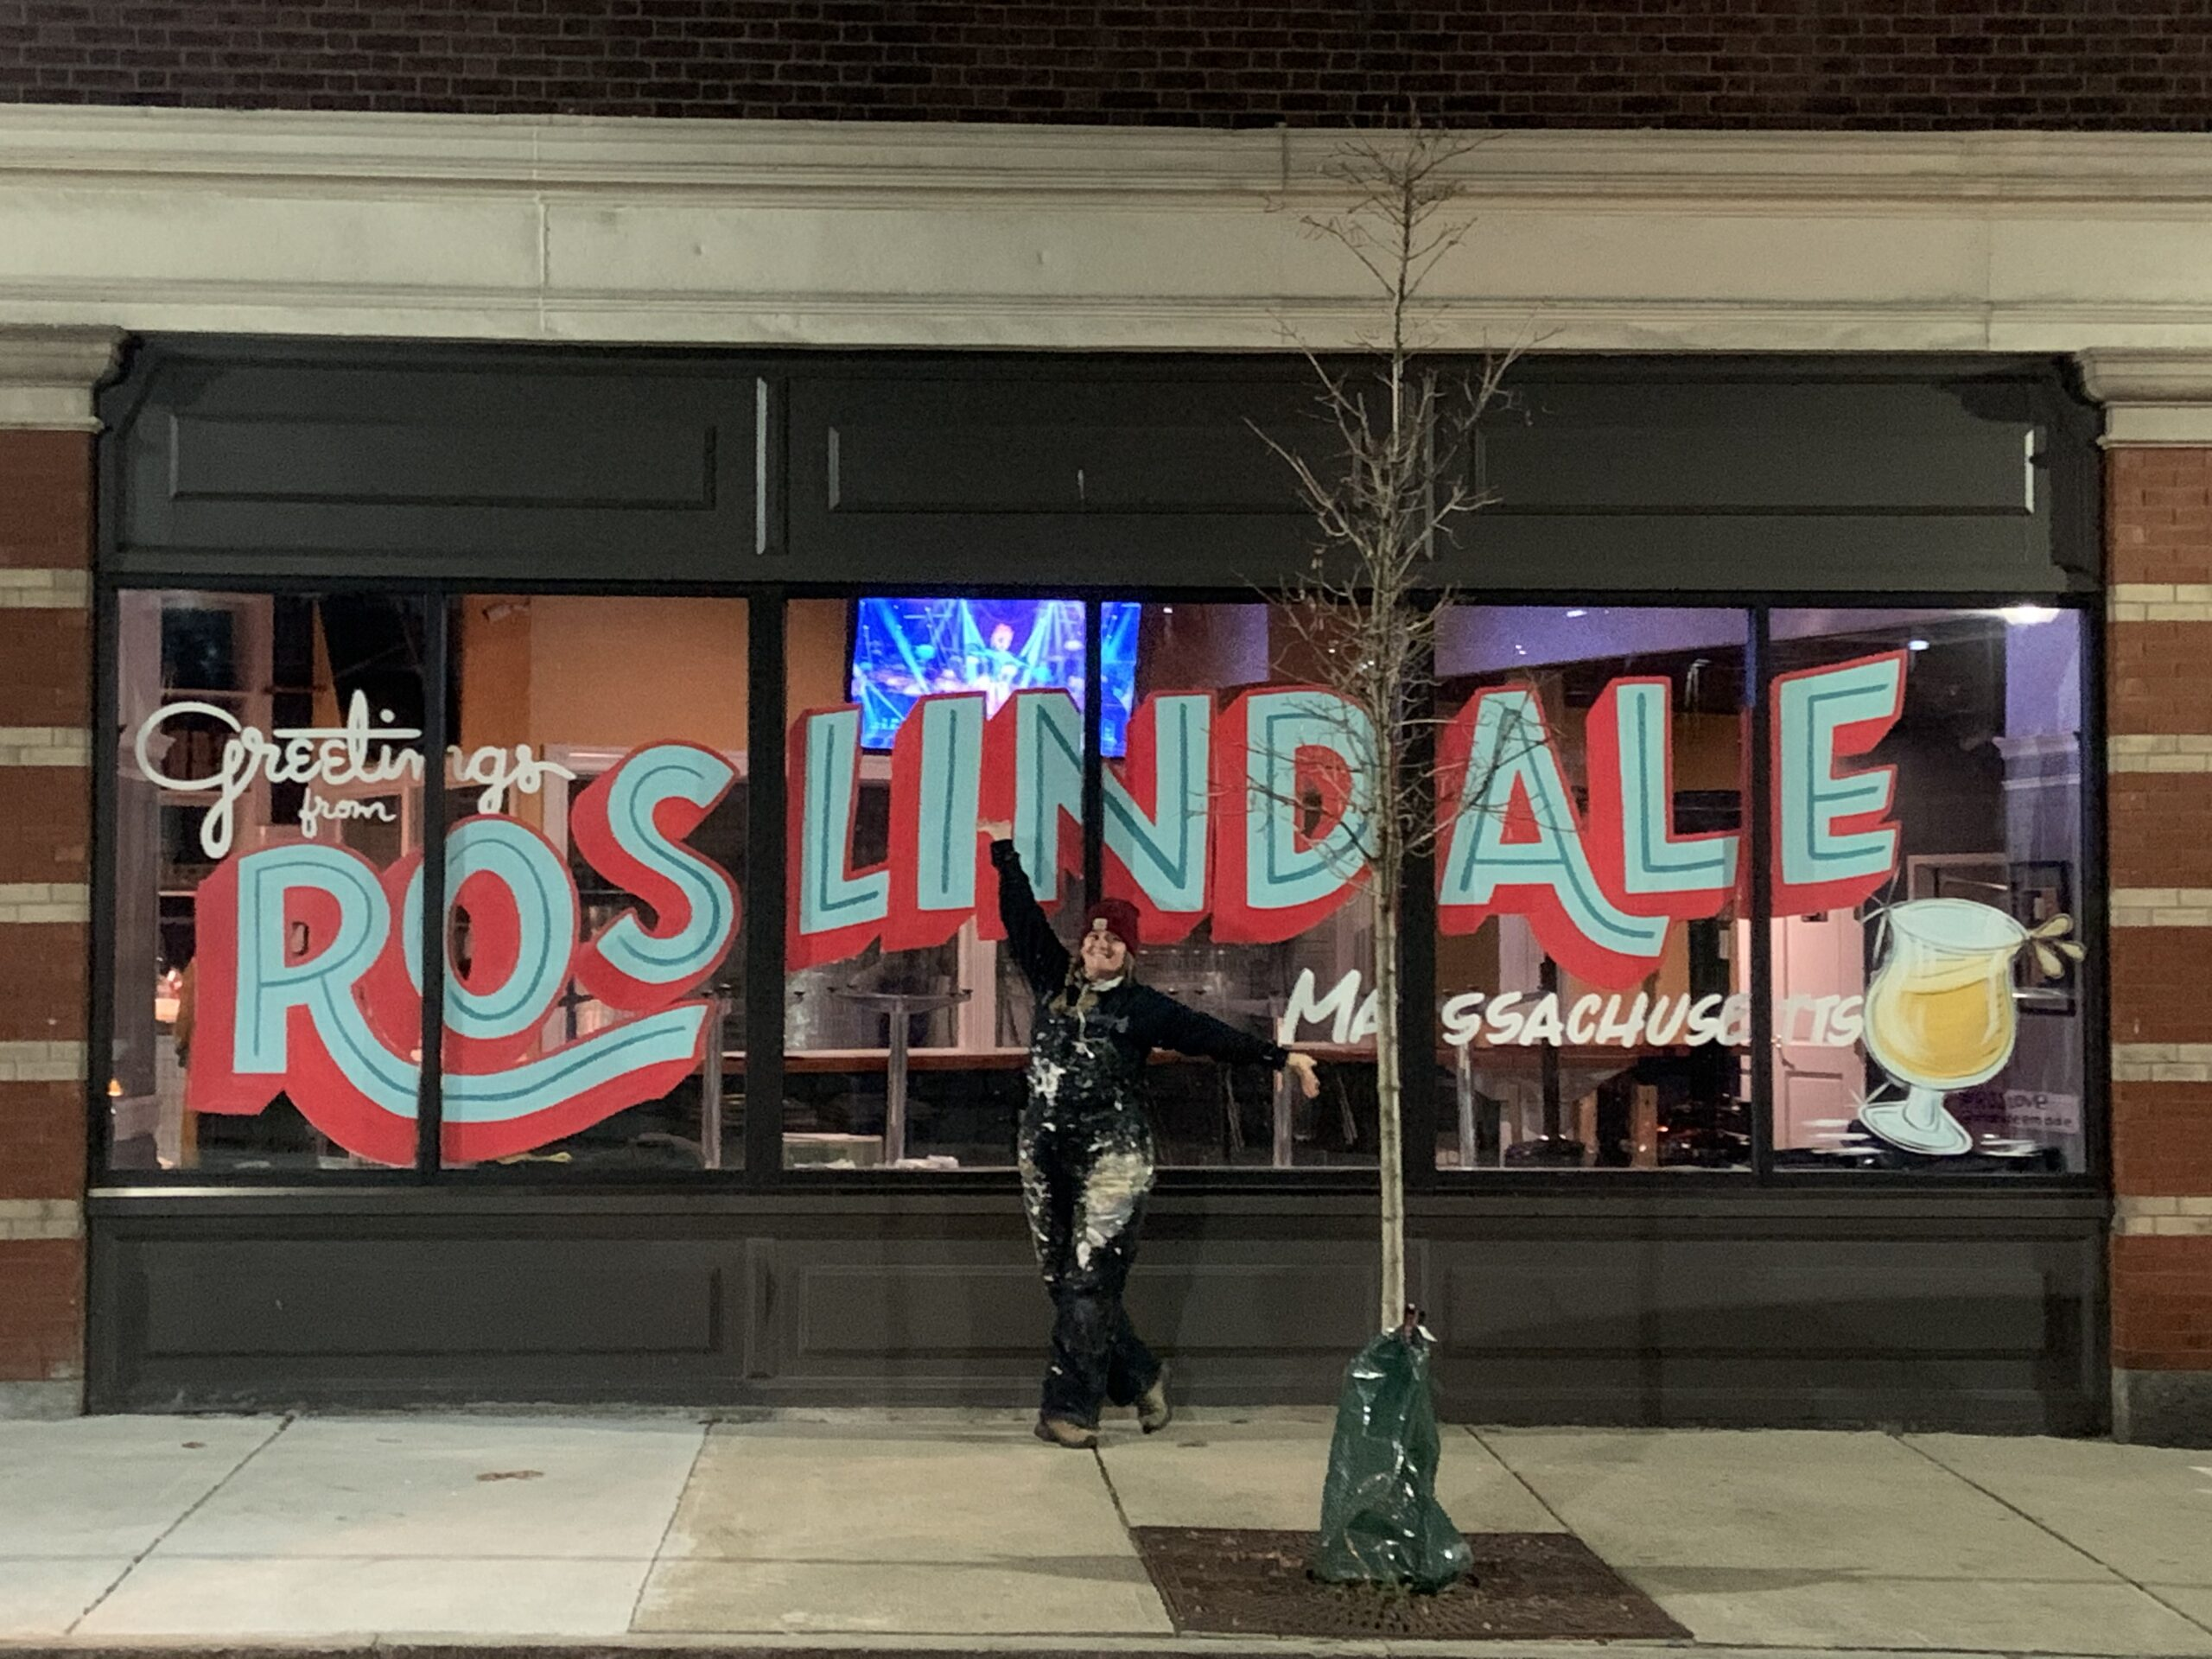 Greetings from Roslindale image in front of Distraction Brewing